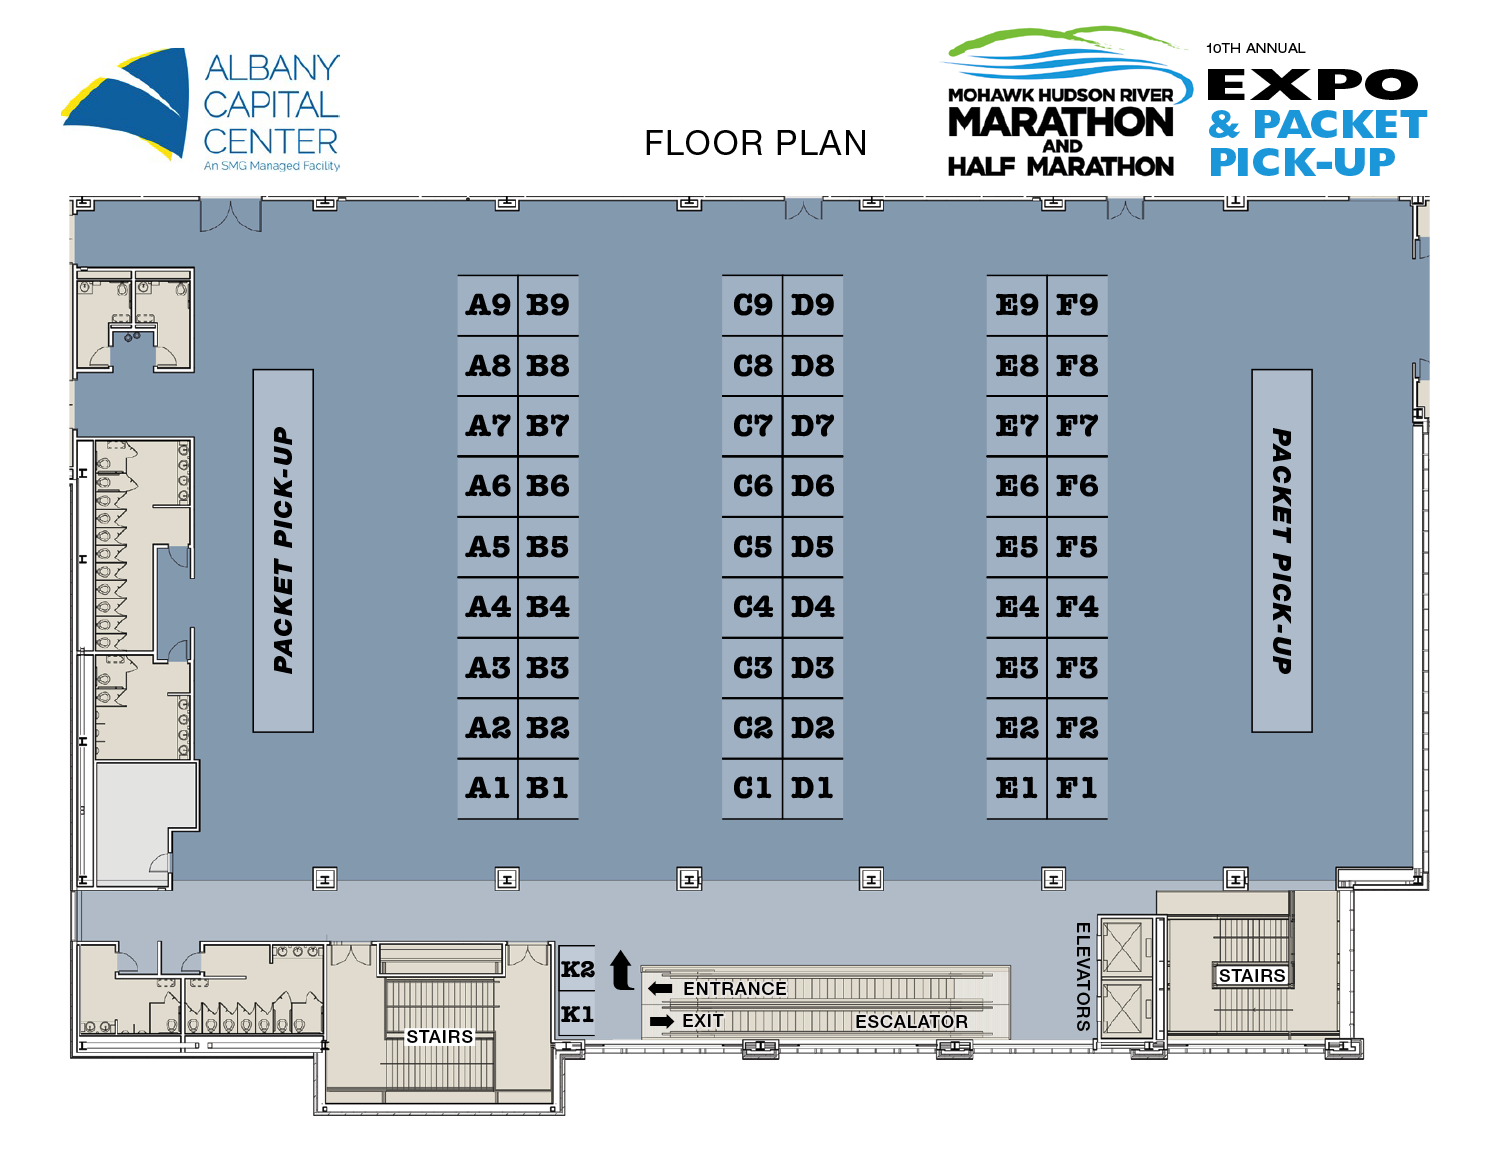 2019-mhrm-expo-exhibitor-map.png